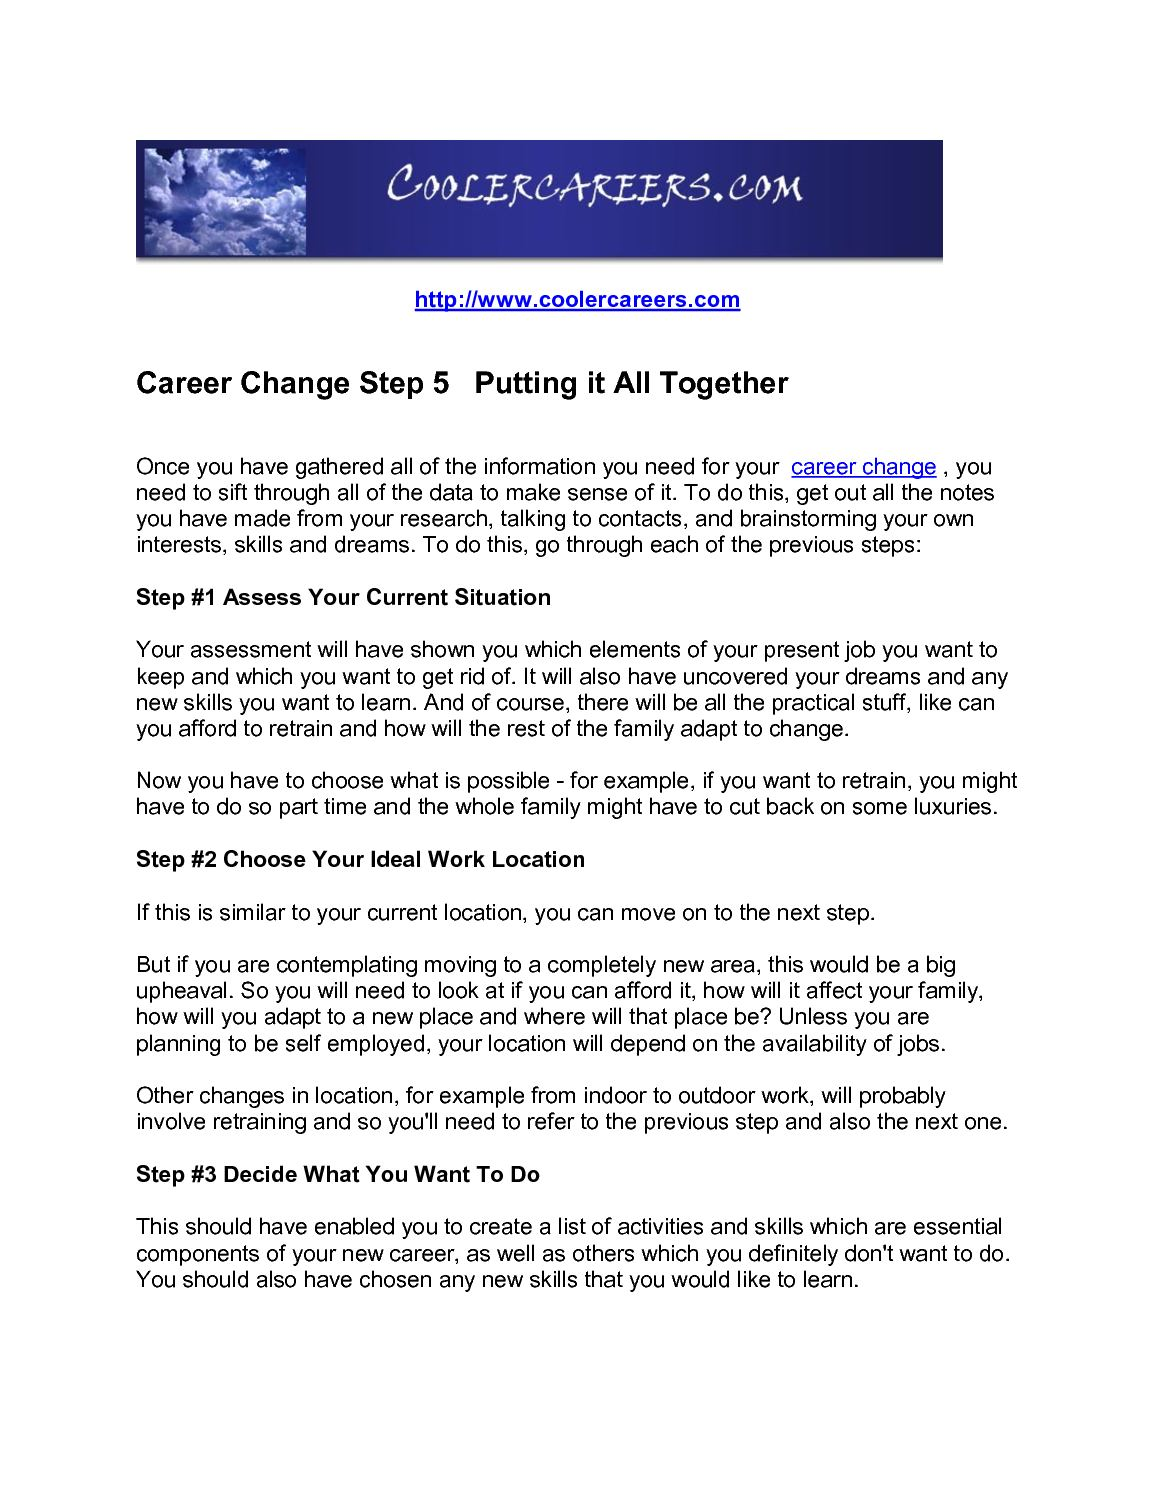 foto Moving in Together: The Changes You Should Expect